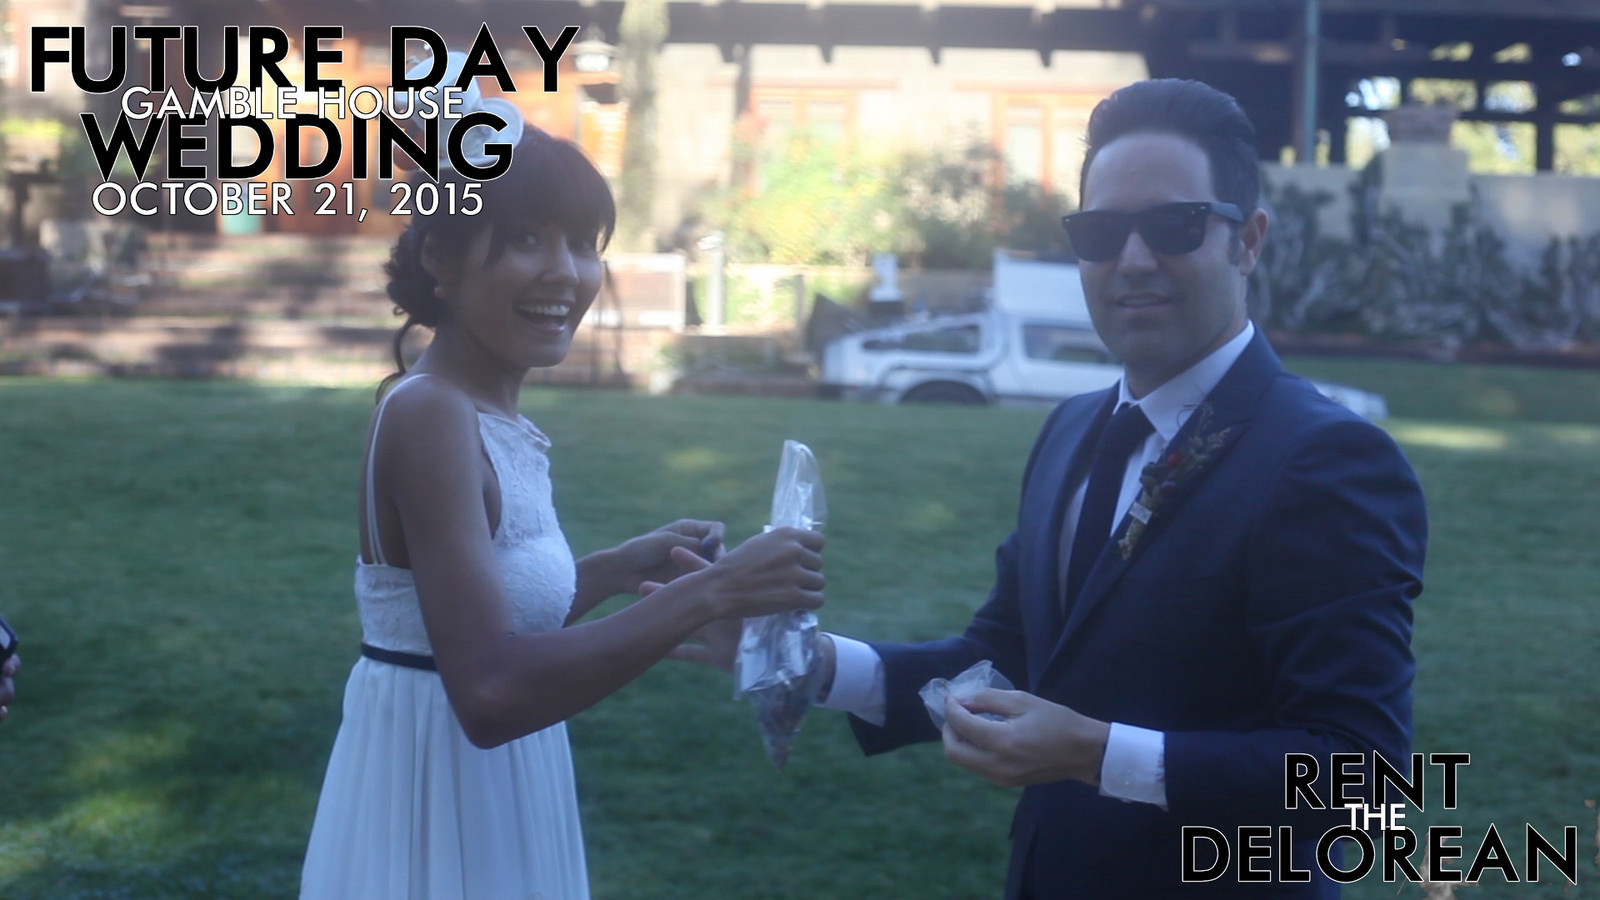 Future Day Wedding at The Gamble House